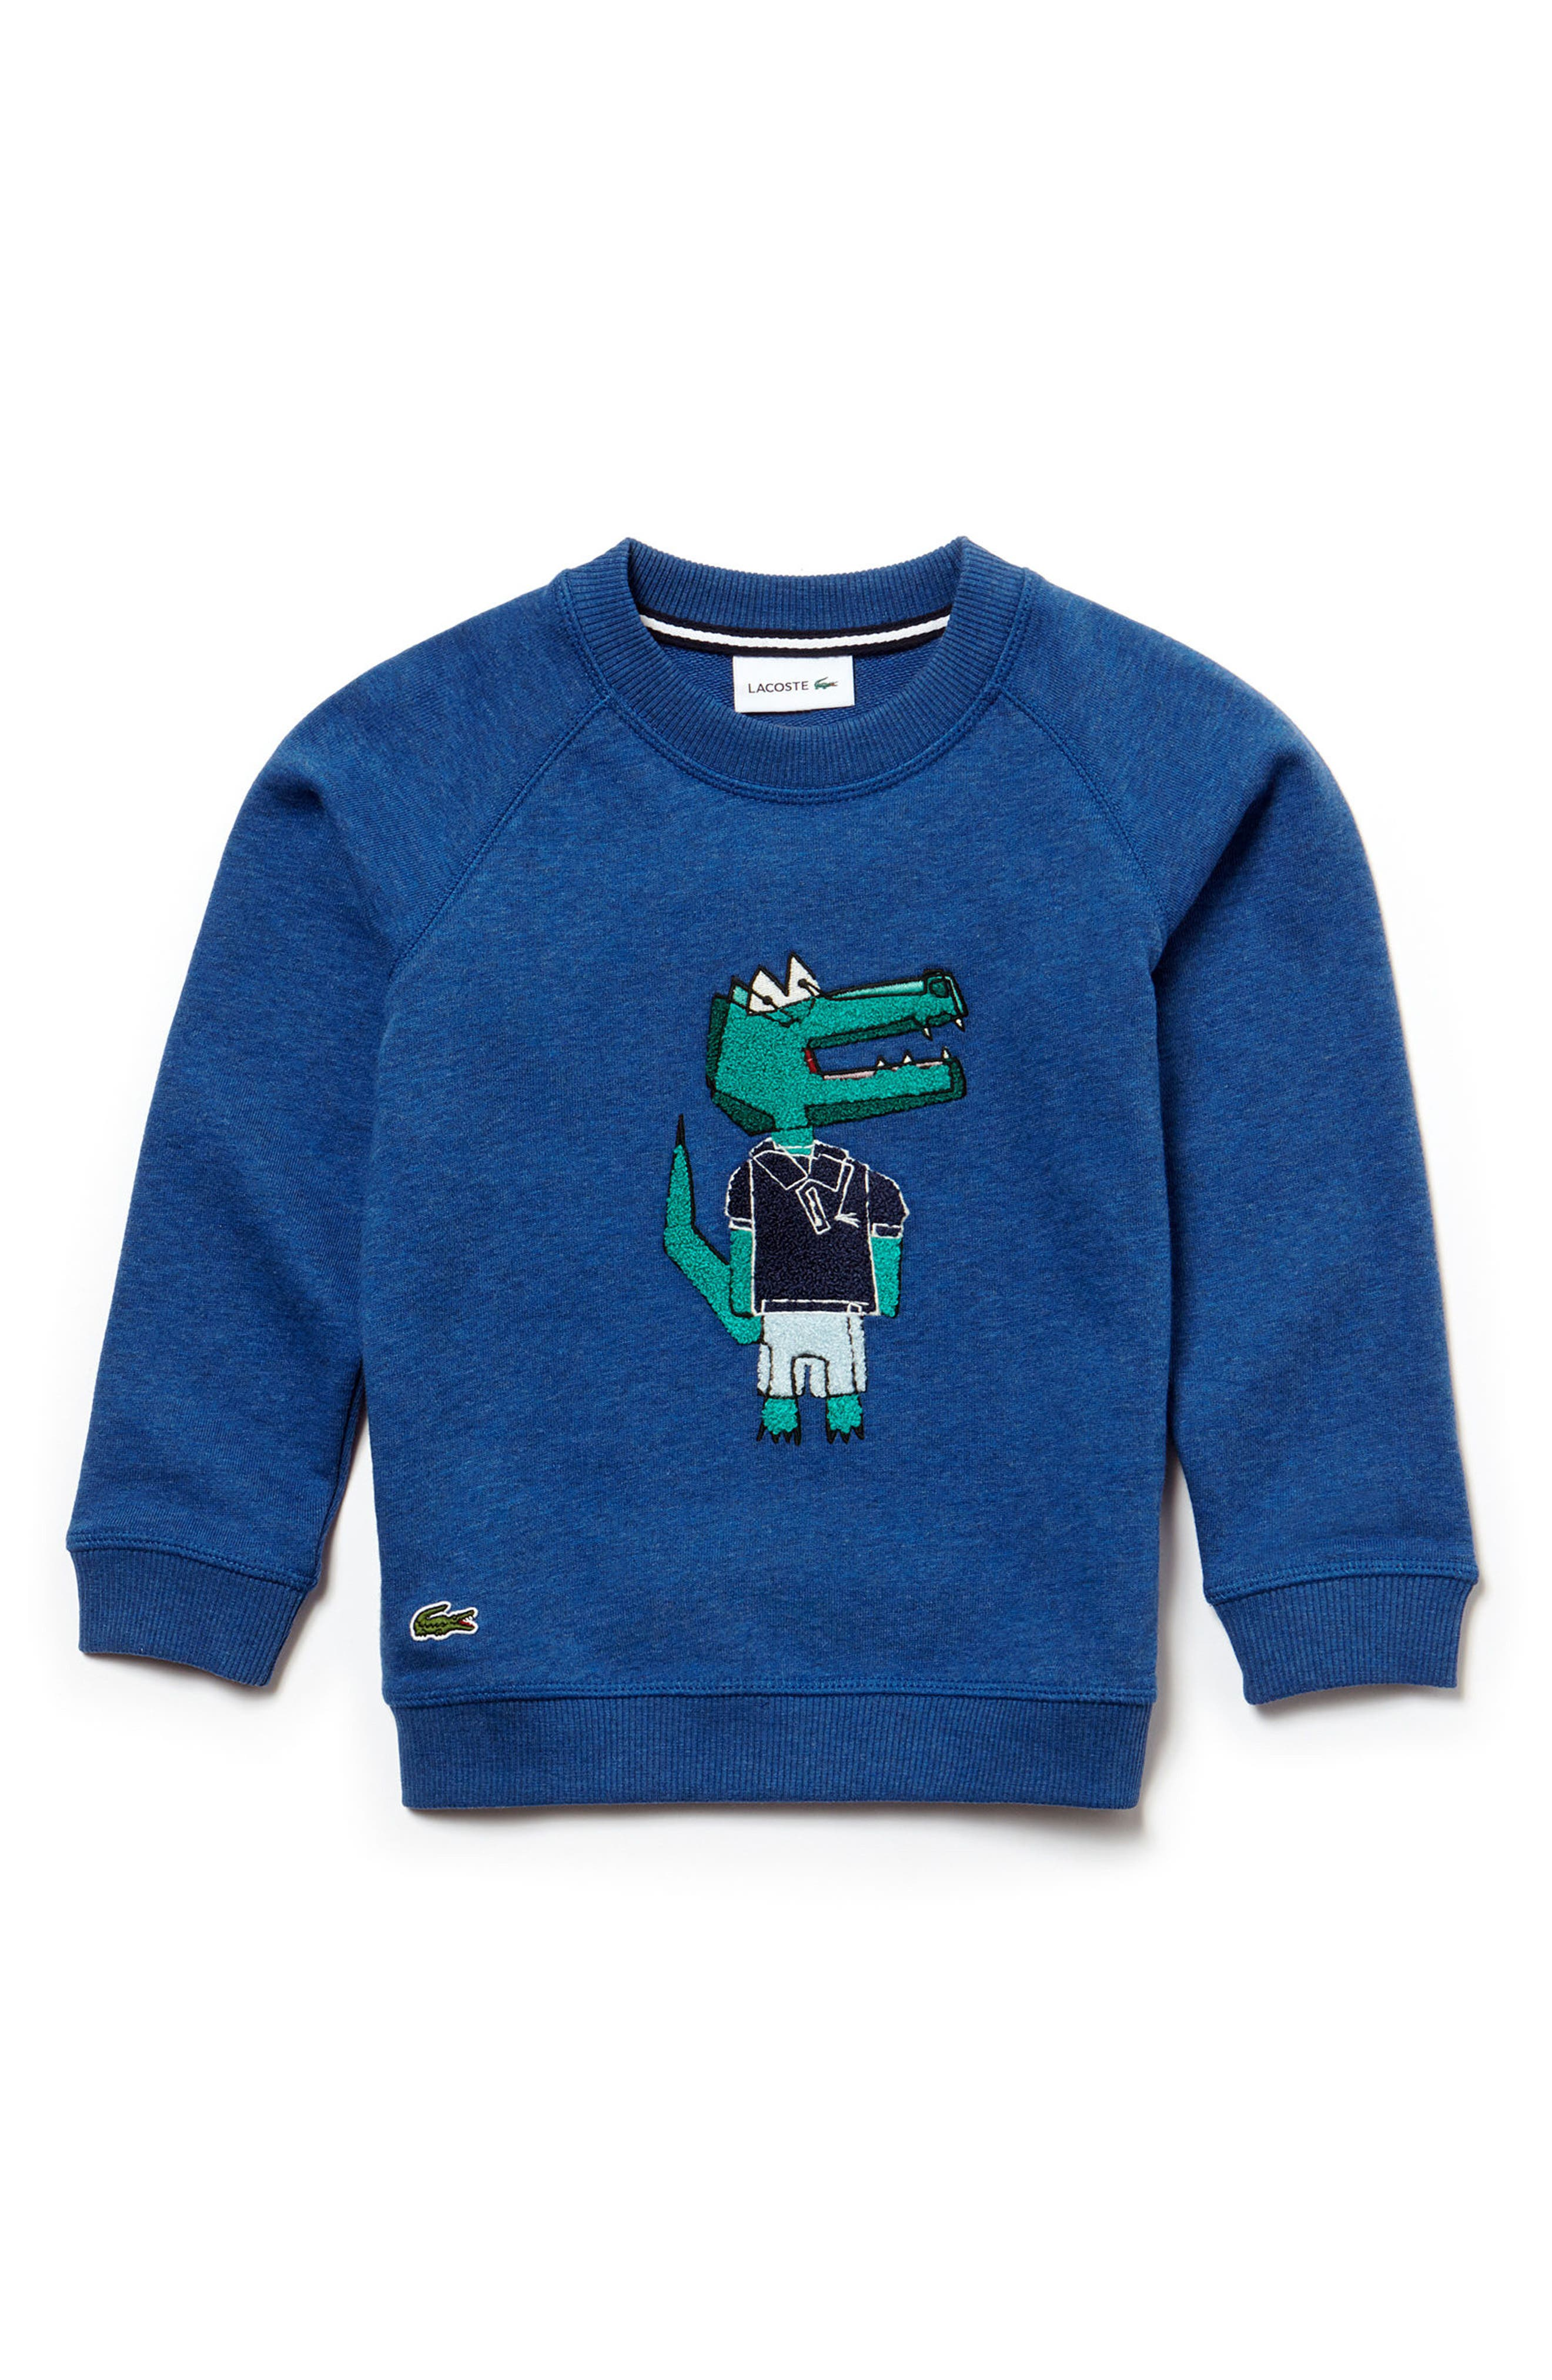 Crocodile Sweater,                             Main thumbnail 1, color,                             Elysee Chine